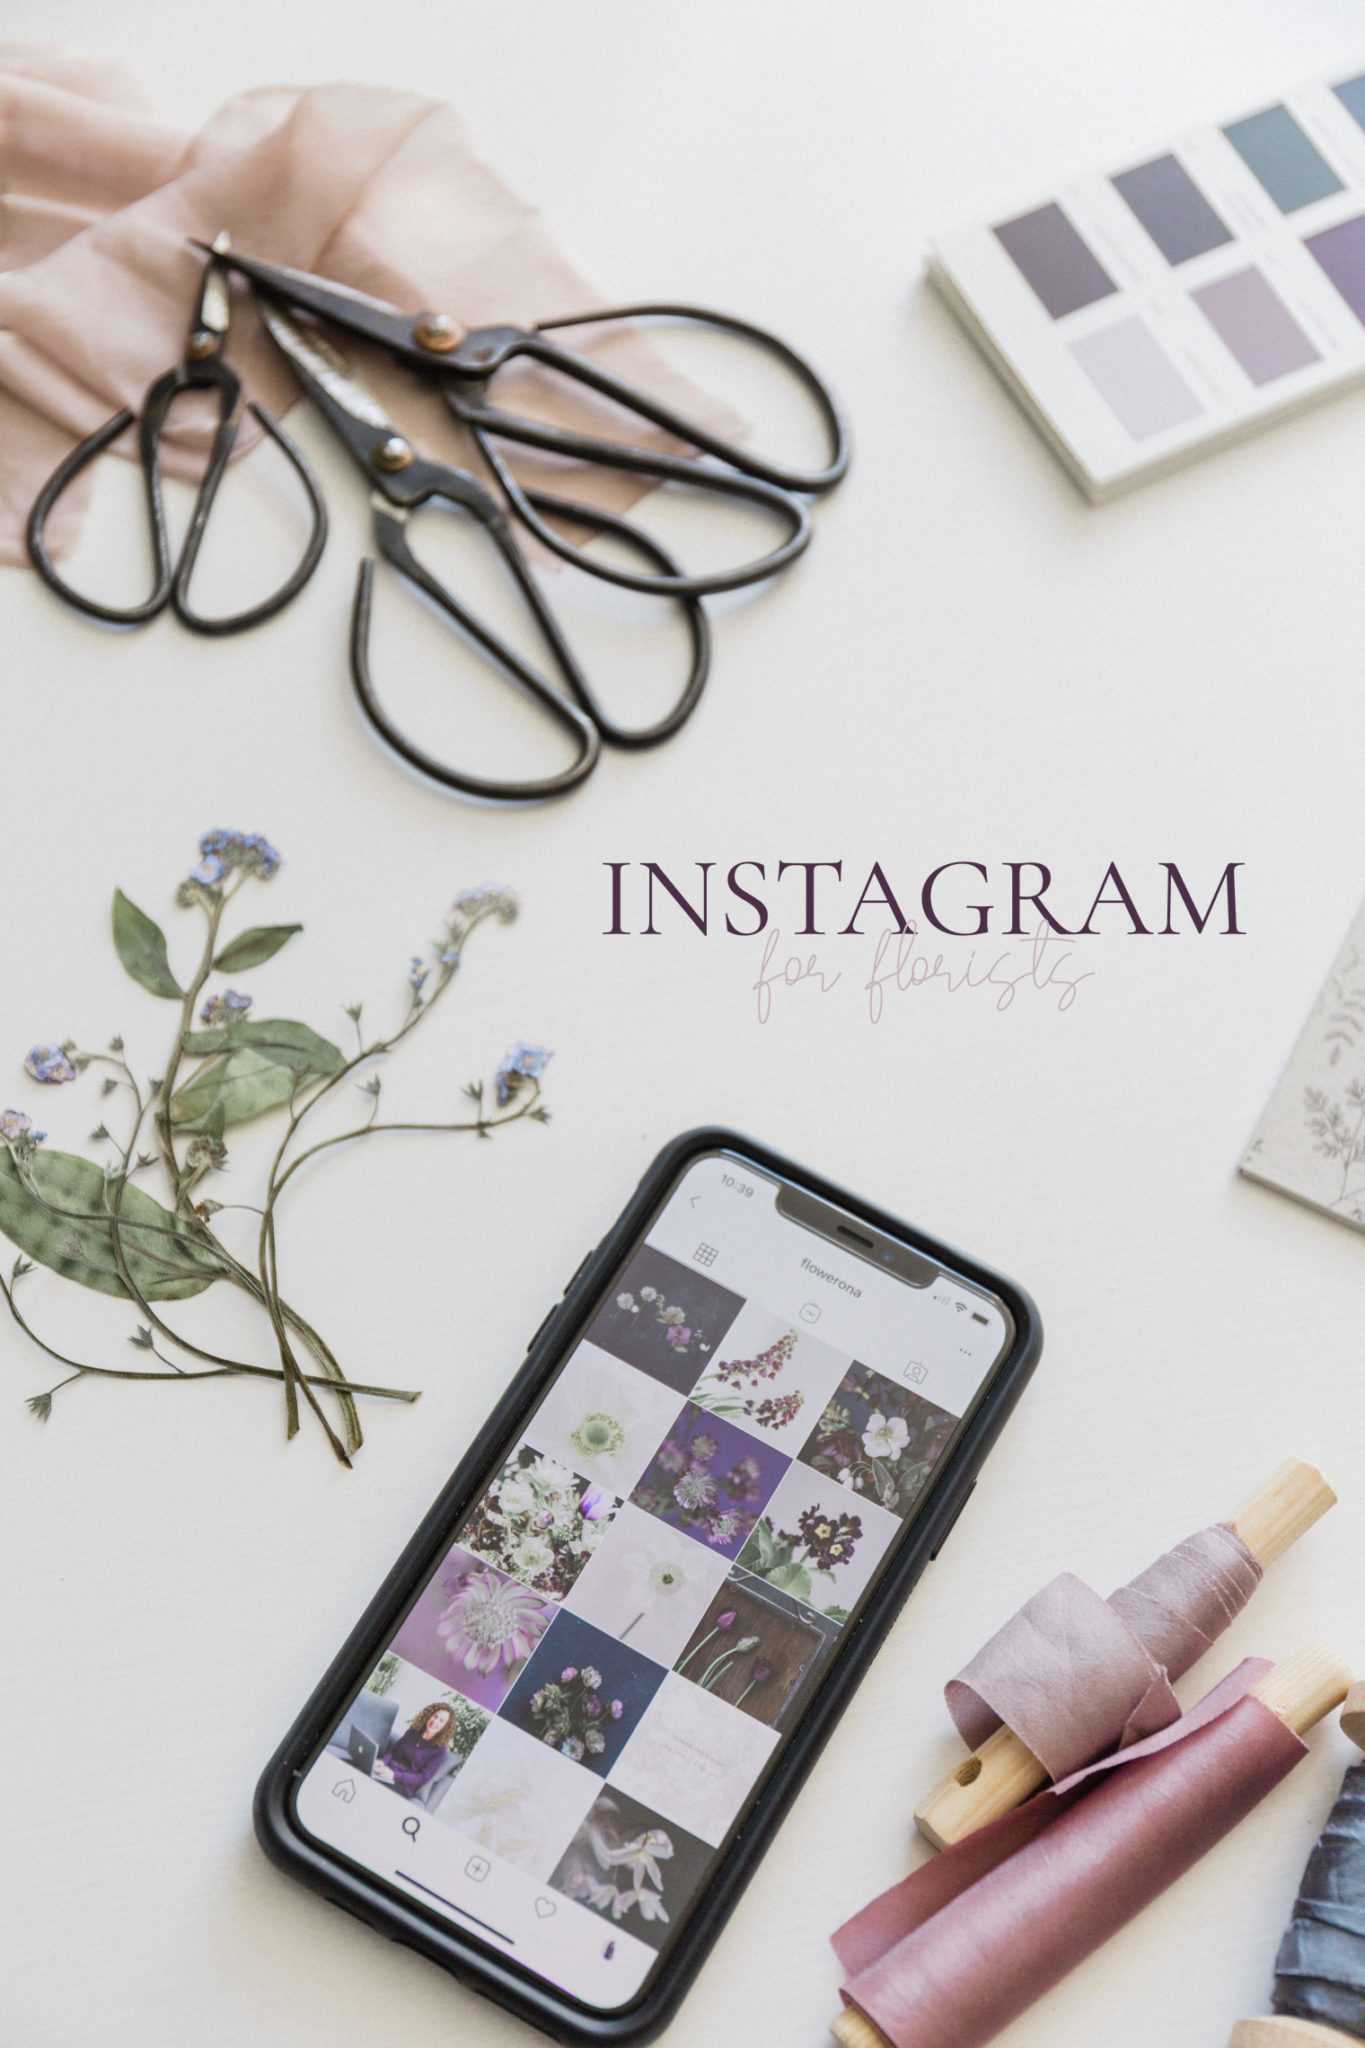 Instagram for Florists online course